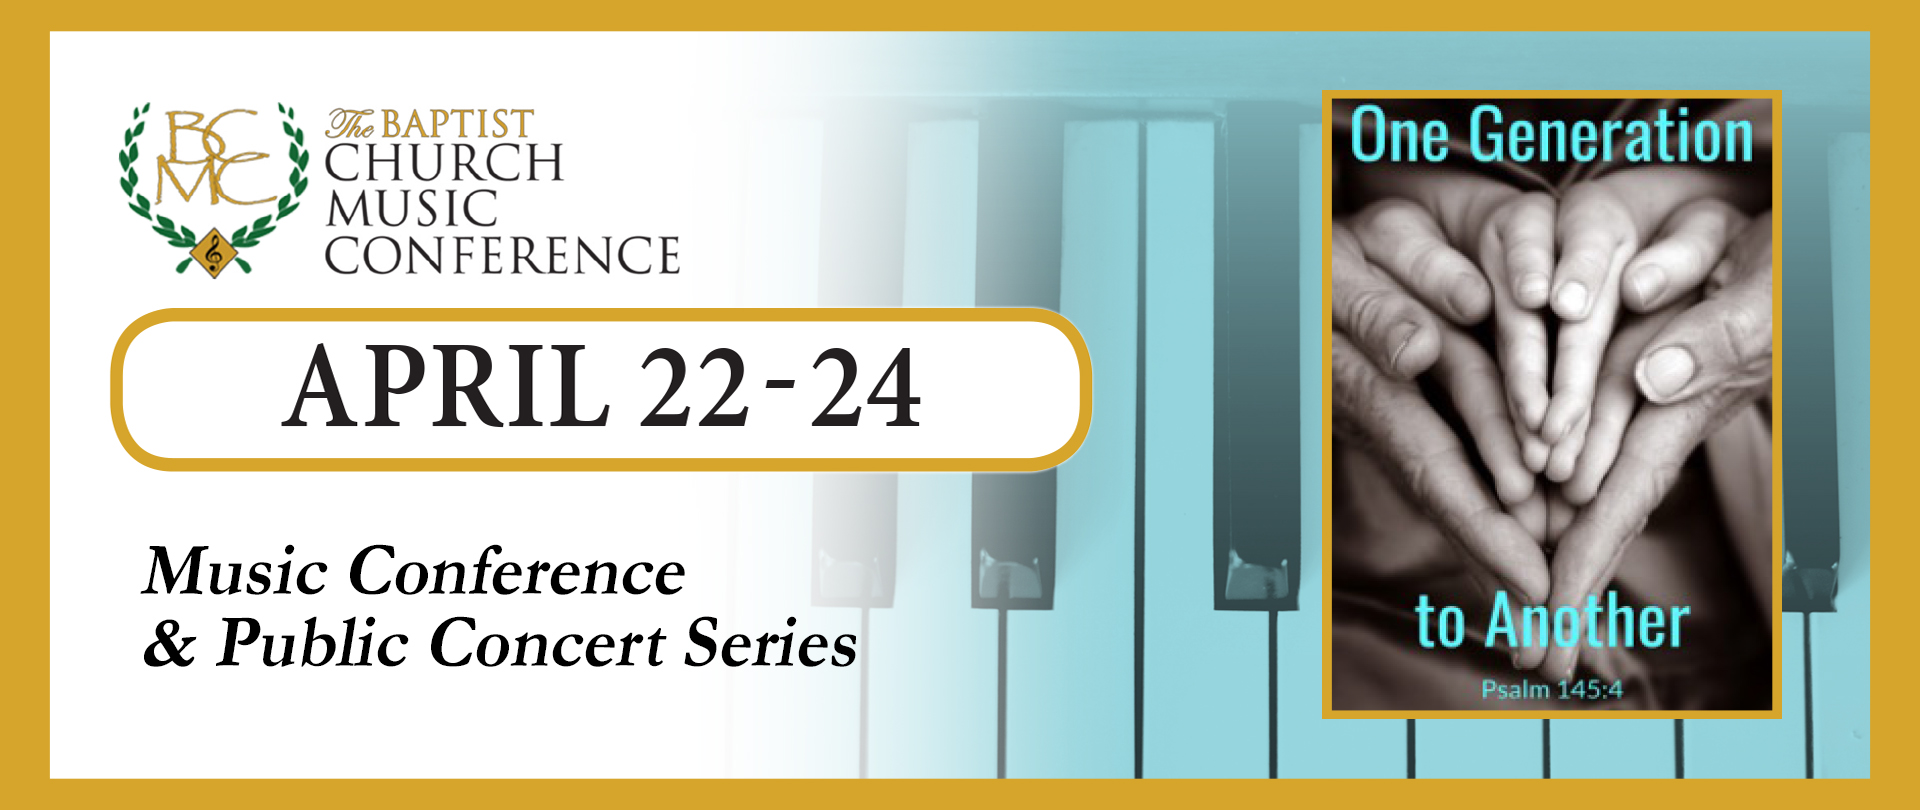 Baptist Church Music Conference